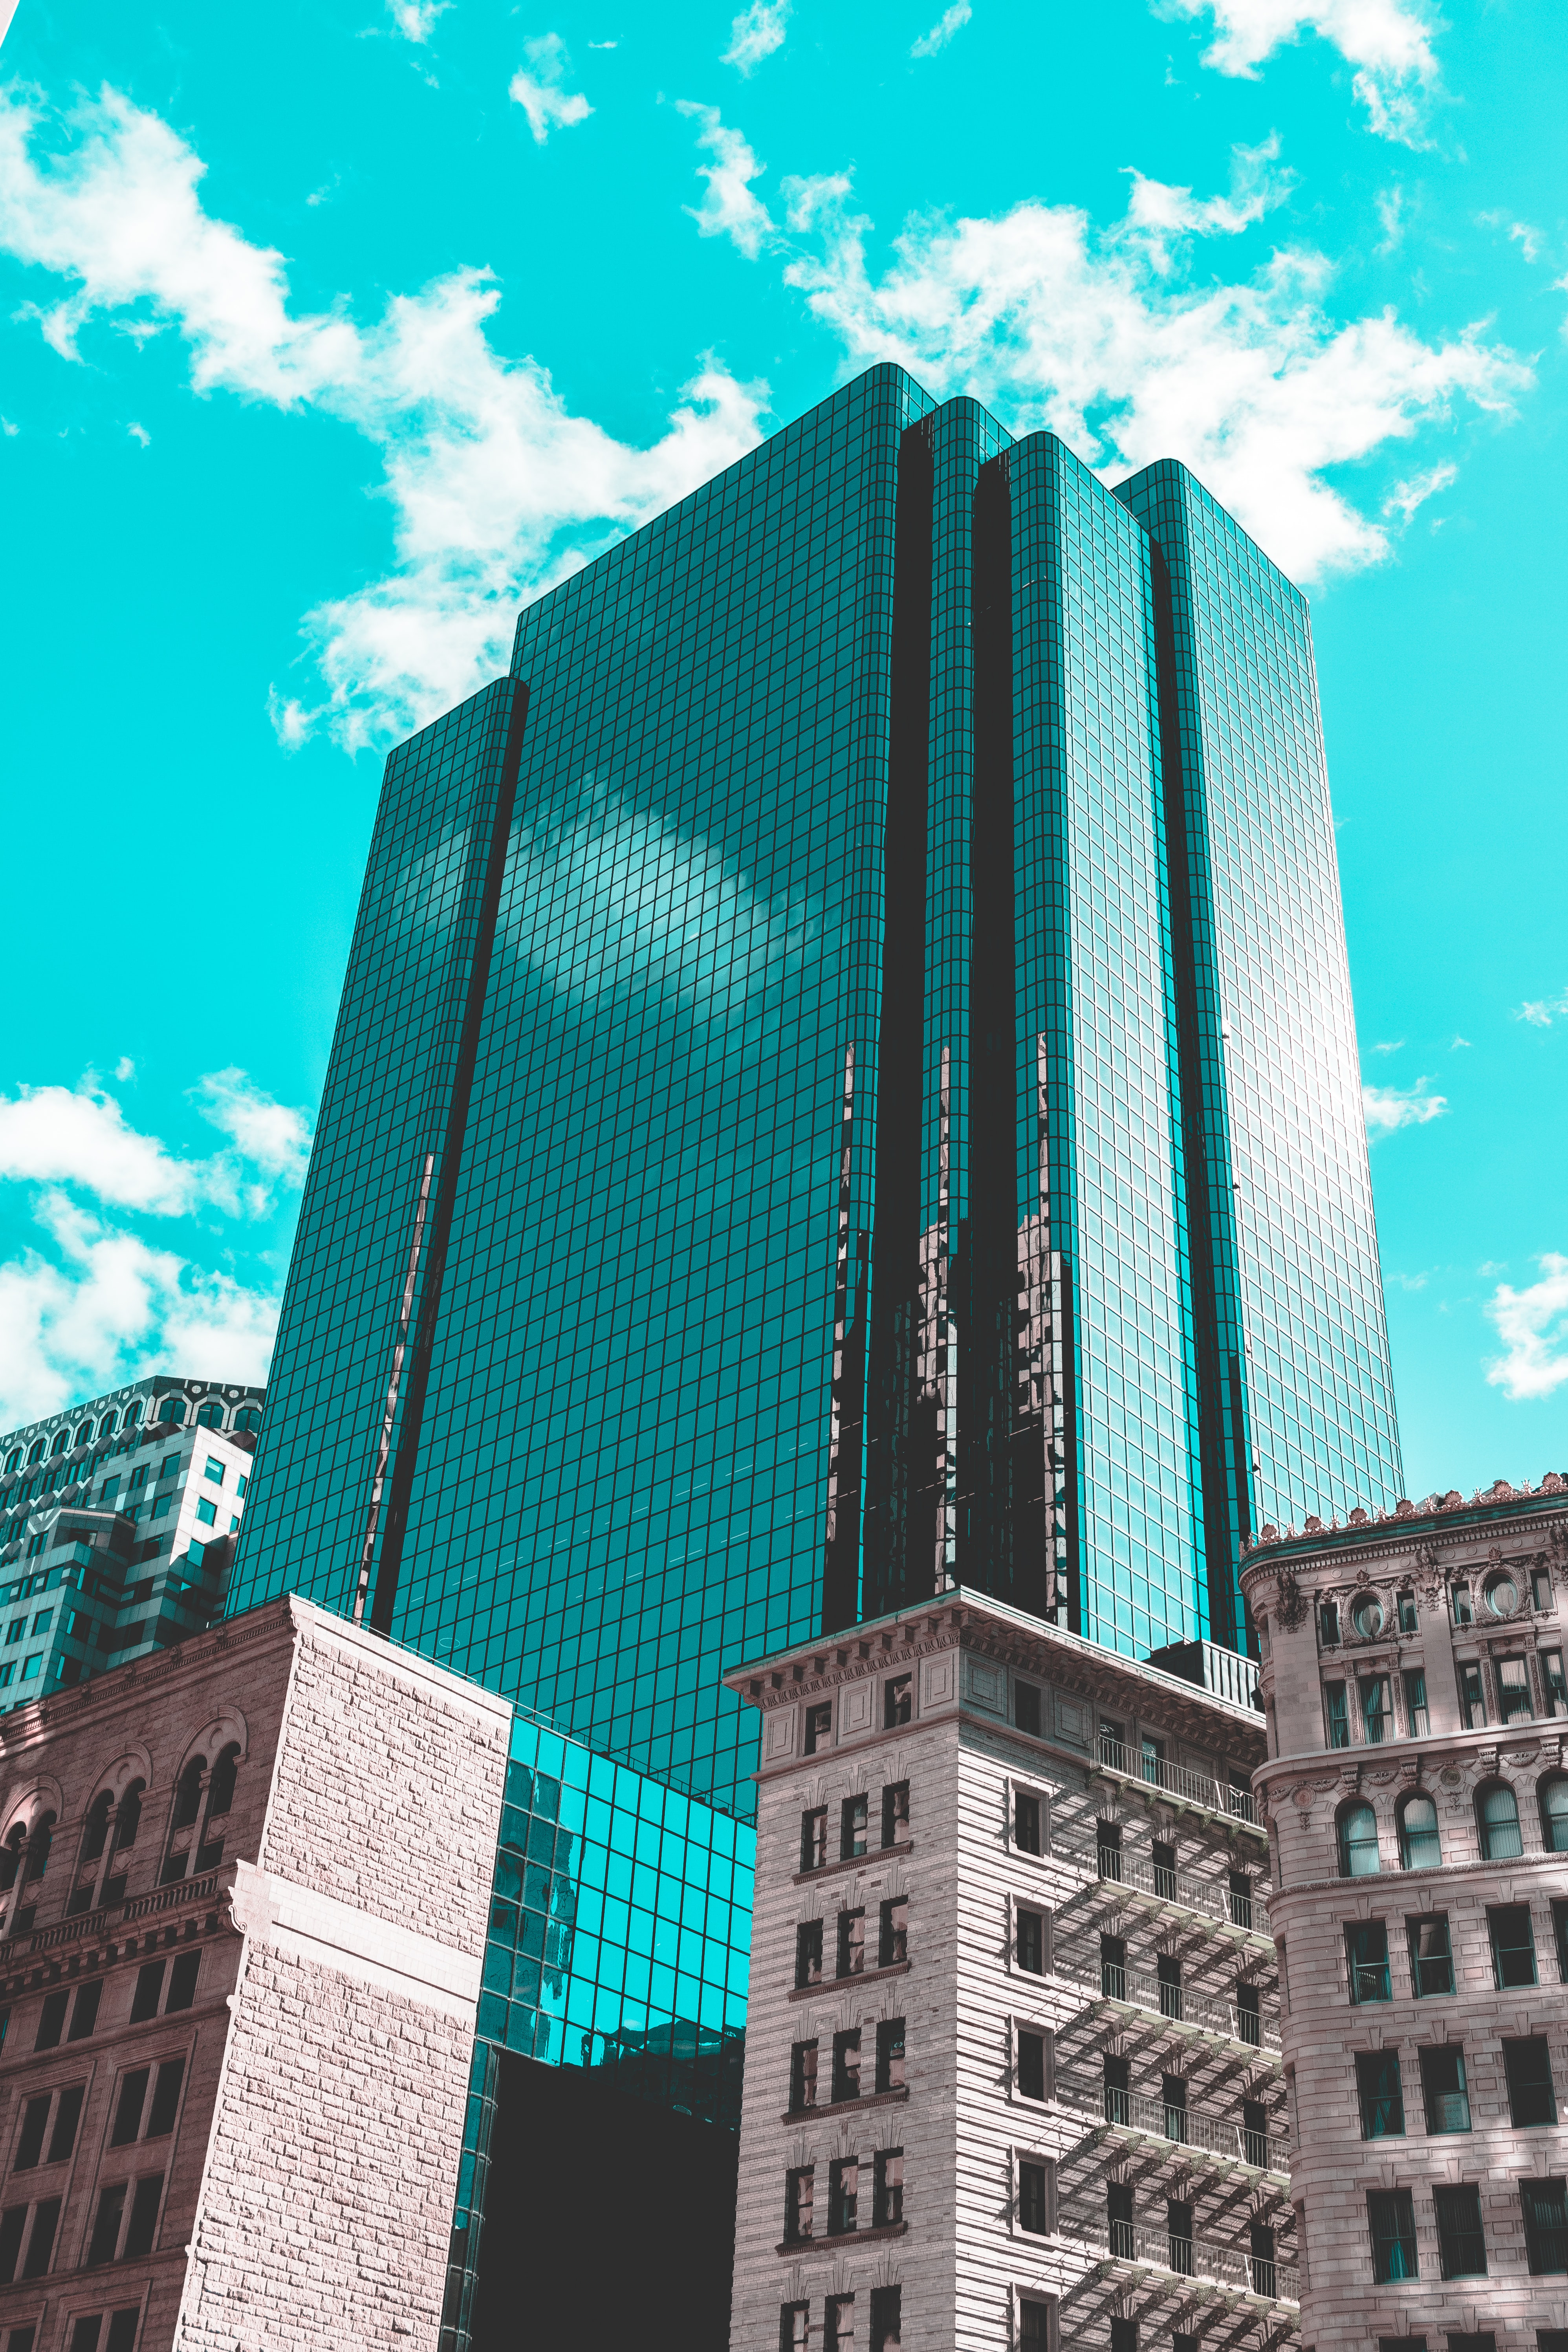 Turquoise sky frames a reflective downtown office building